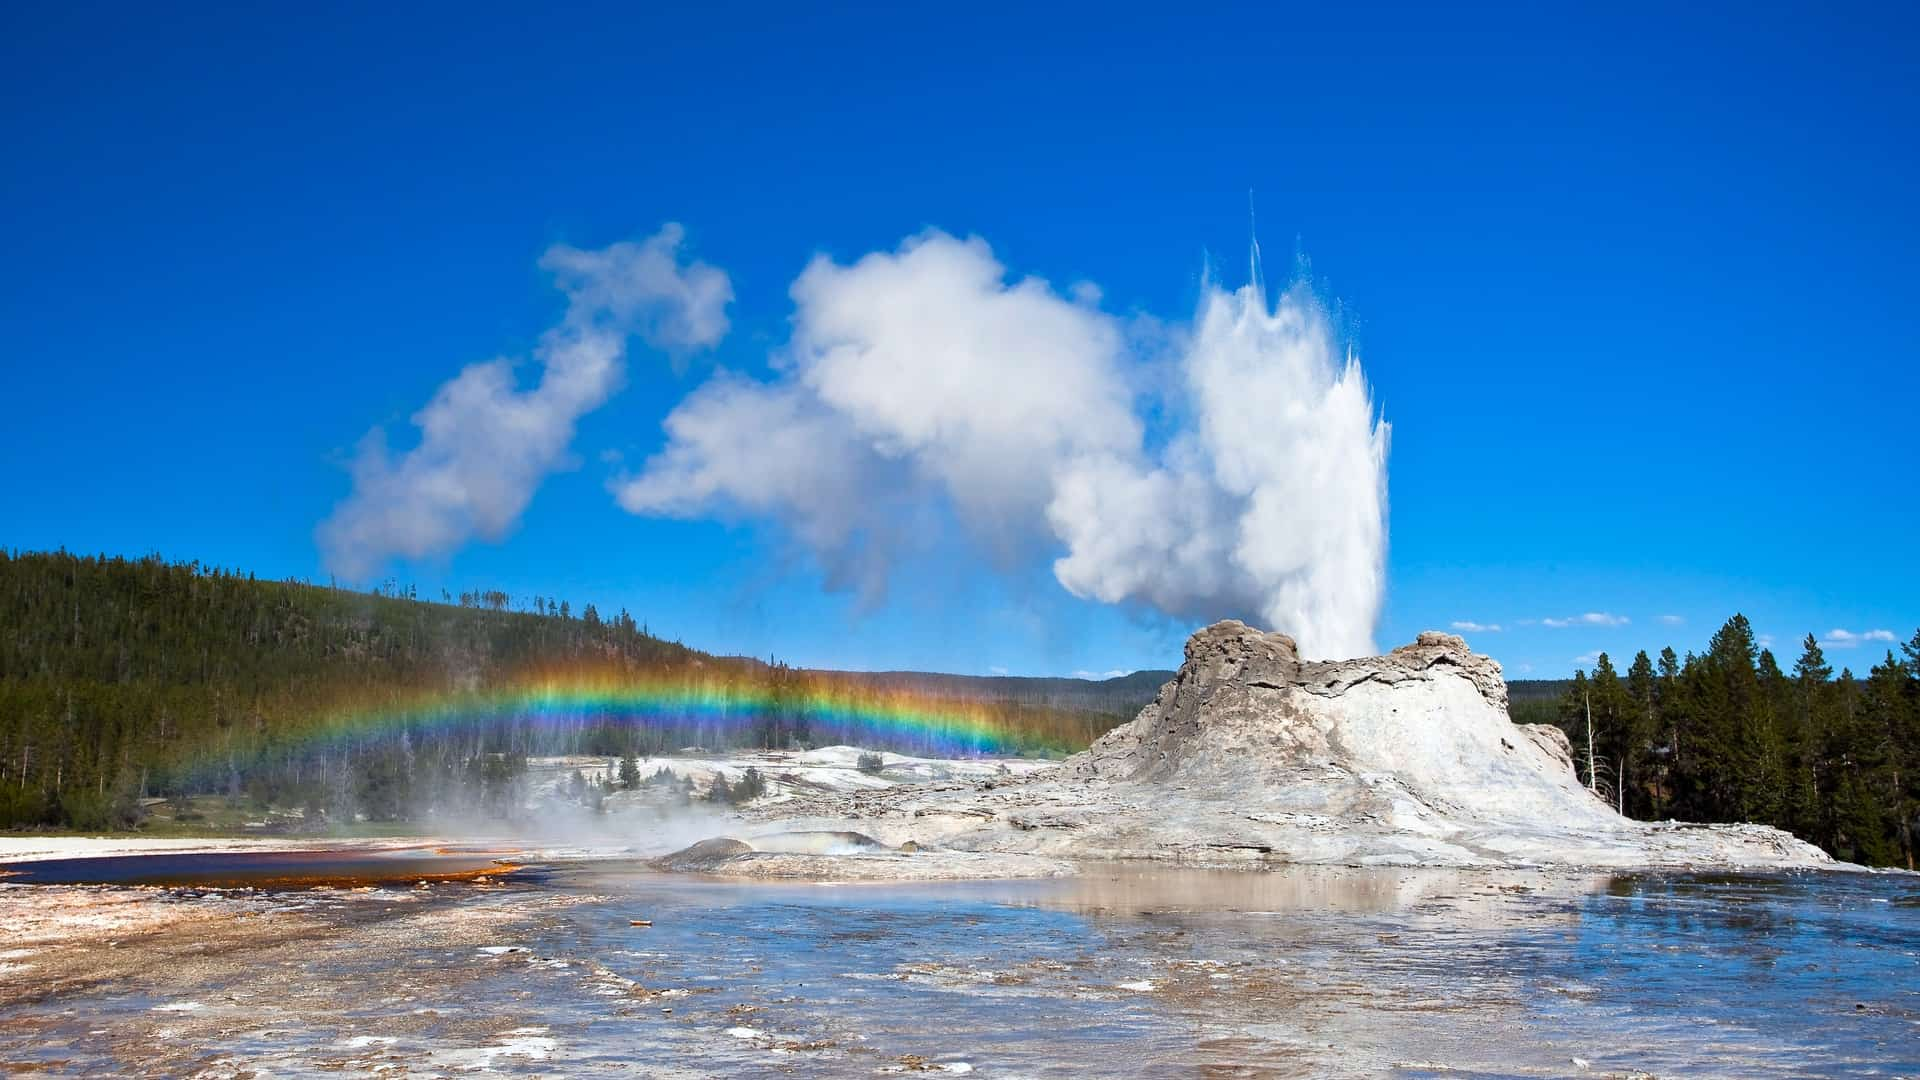 An Epic Road Trip from Chicago to Yellowstone with the Family 1